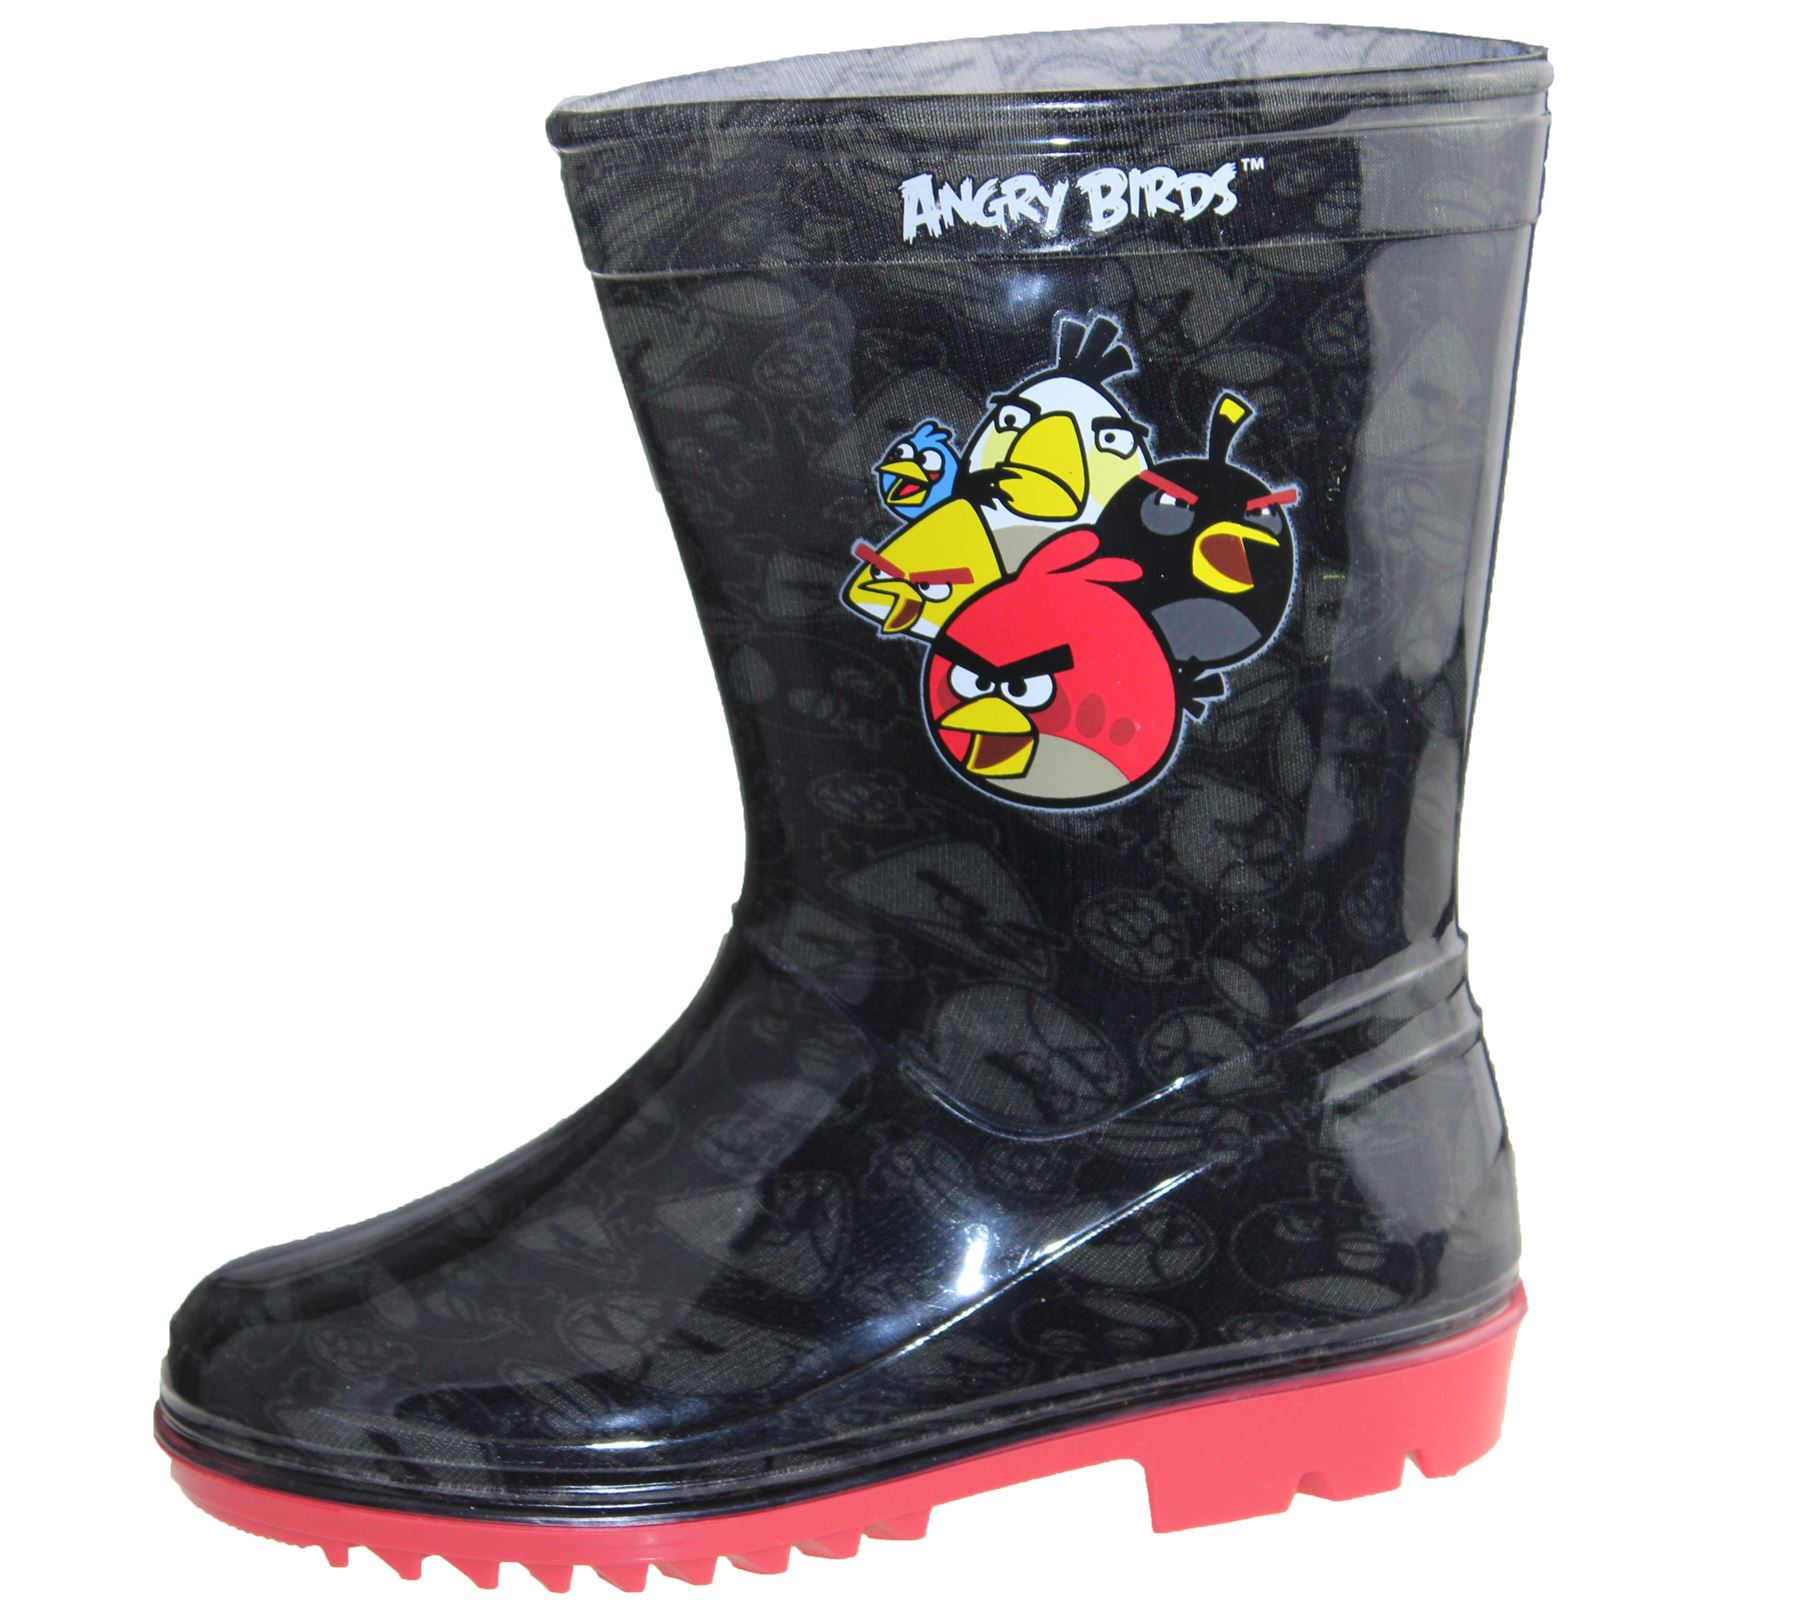 Boys Wellington Girls Wellies Kids Unisex Rain Snow Rubber Angry Birds Boots